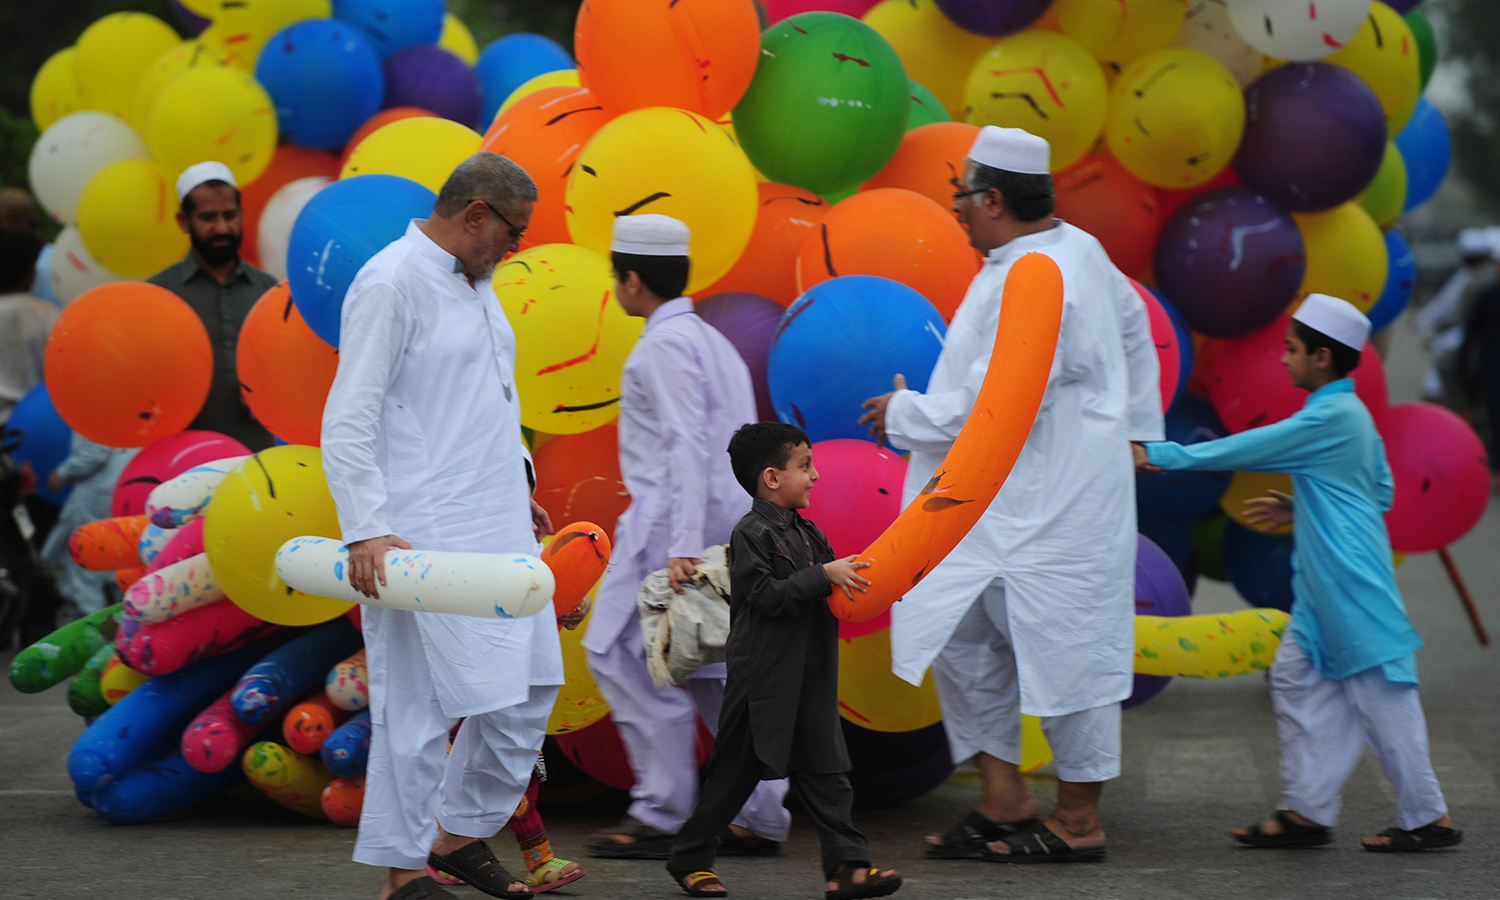 KARACHI: Children buy balloons after offering Eidul Fitr prayers at a mosque on Wednesday.  —AFP/Asif Hassan